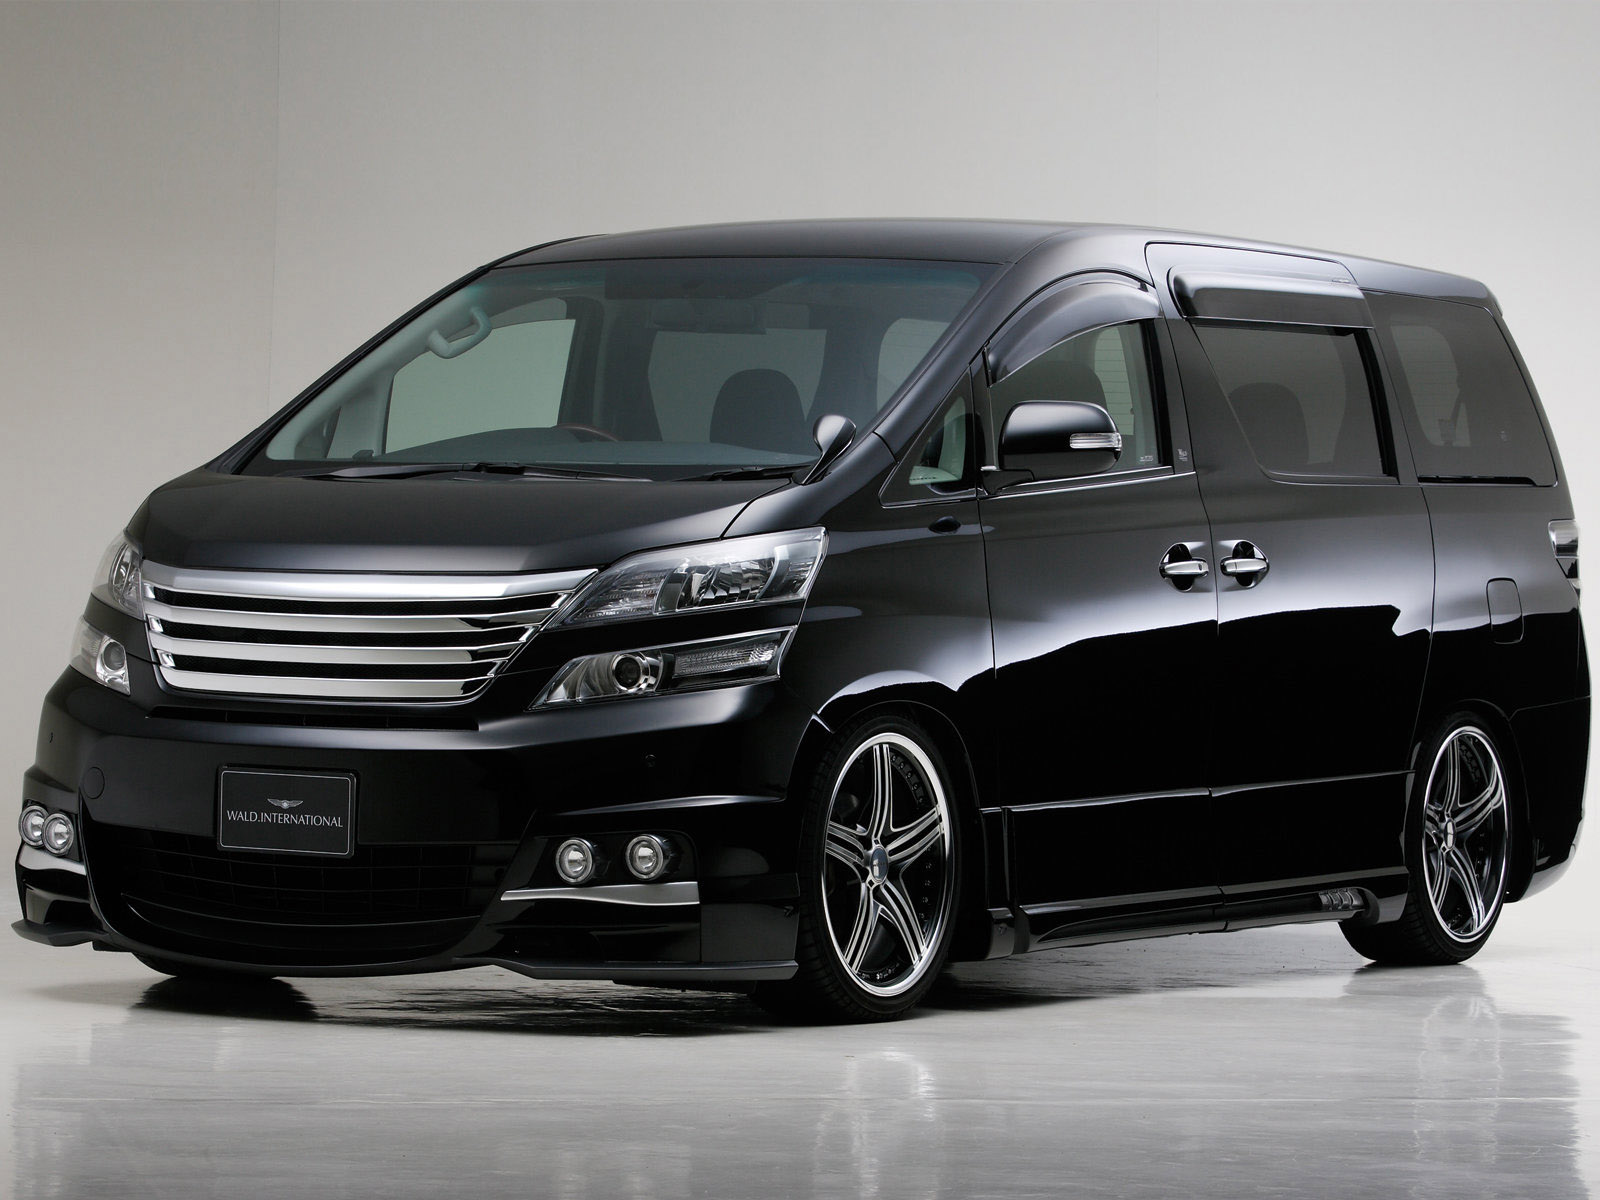 2009 Wald Toyota Vellfire photo - 3